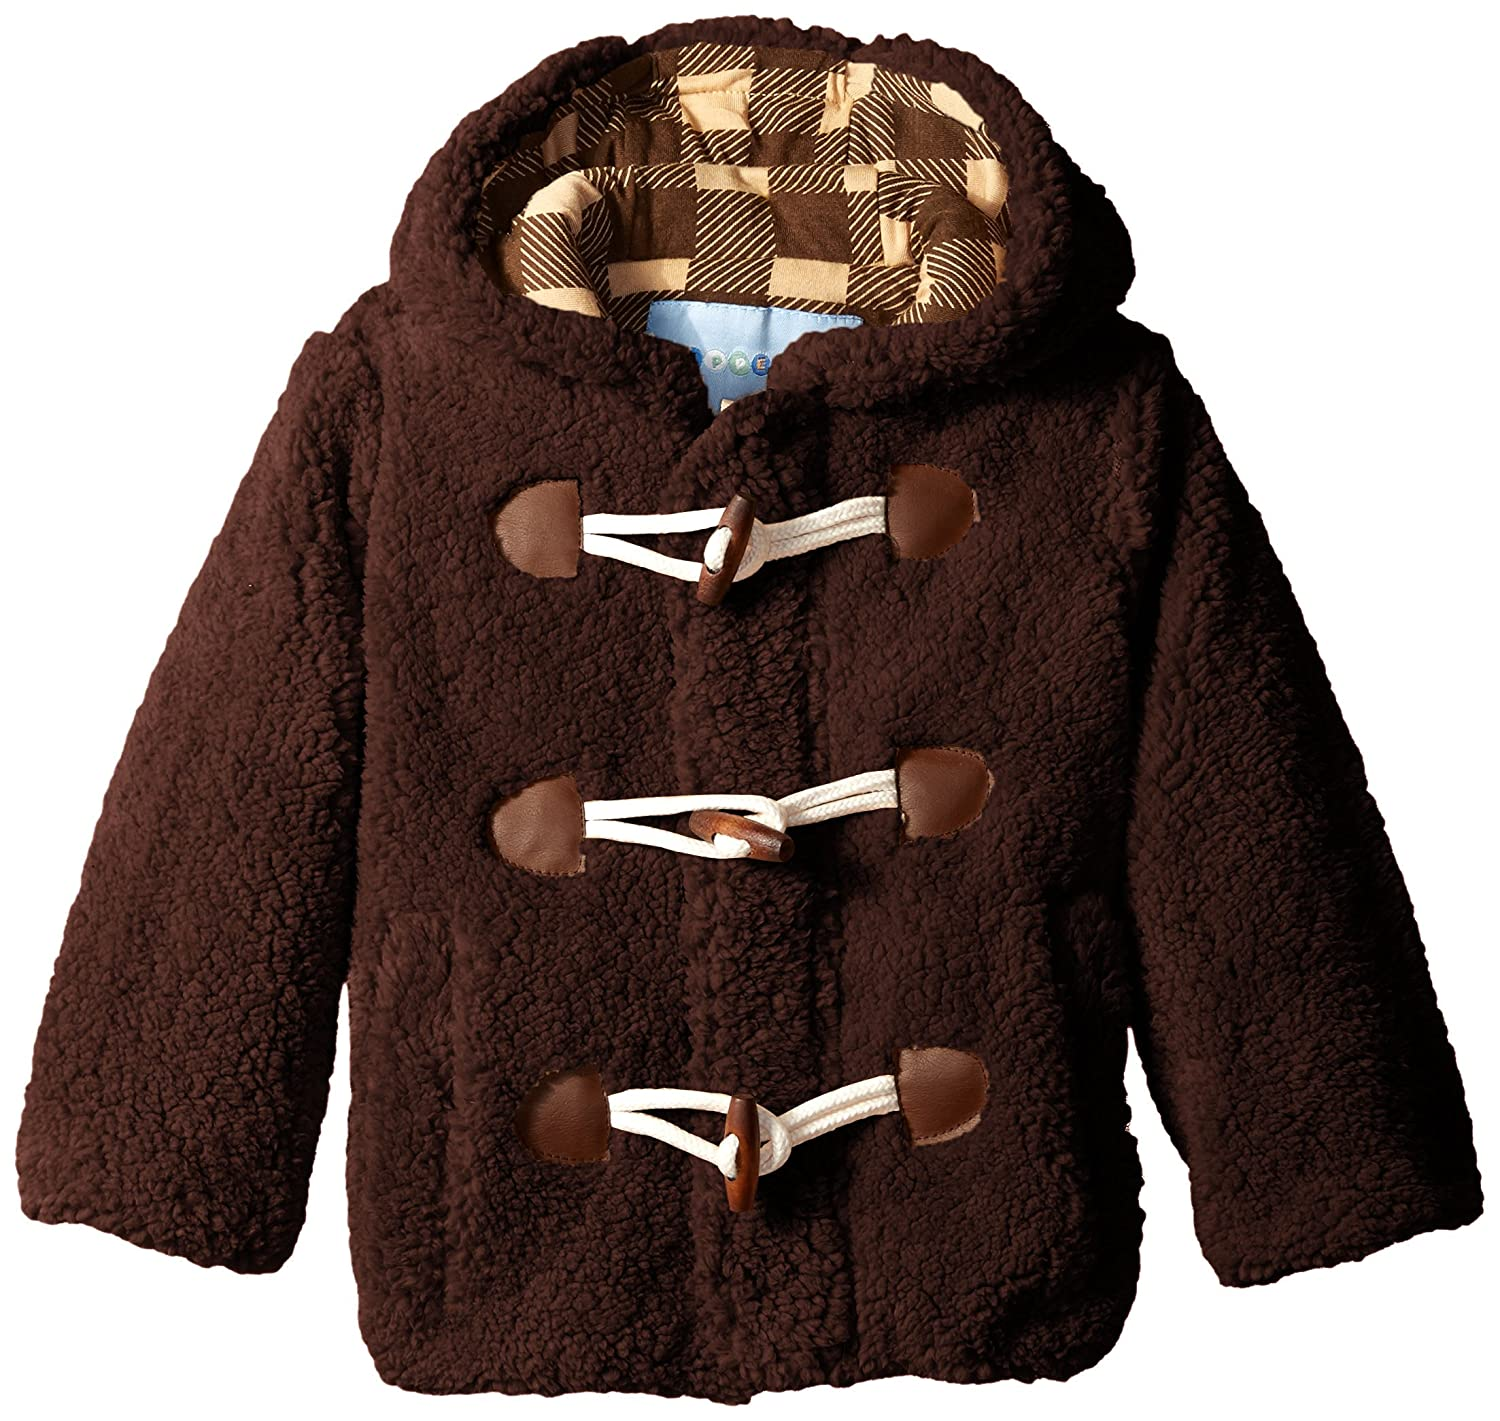 Wippette Little Boys' Wooly Fleece Toggle Coat Wippette Boys 2-7 child code WB73043